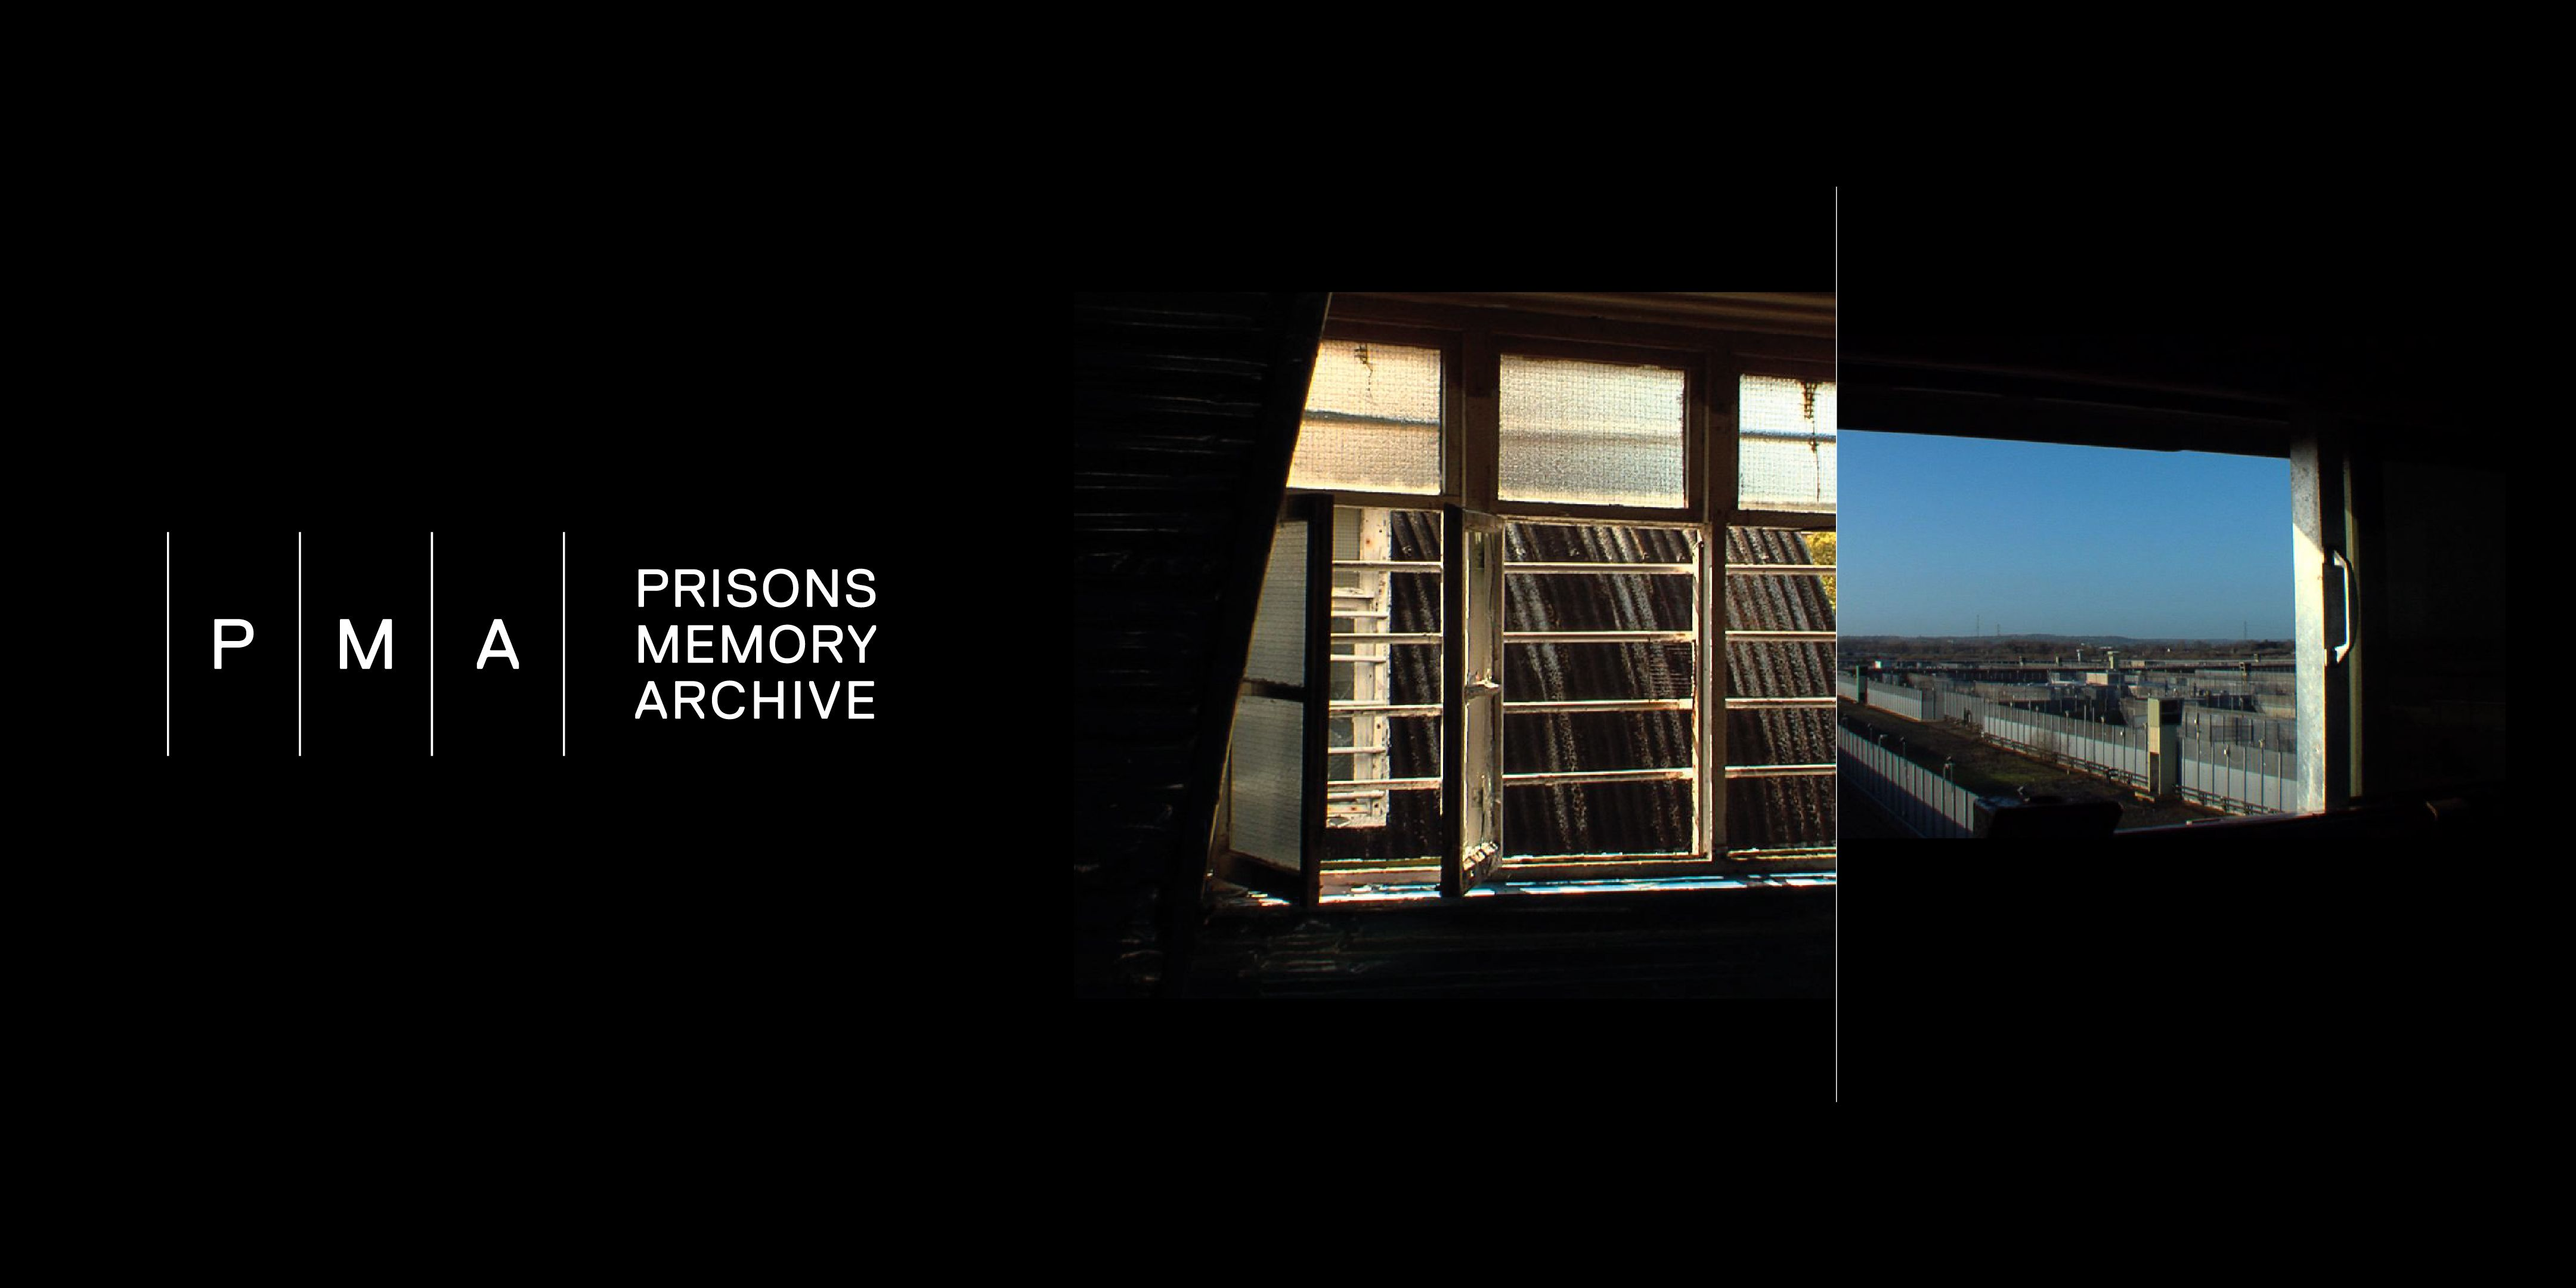 The Prisons Memory Archive: Walking through place to address legacy of conflict